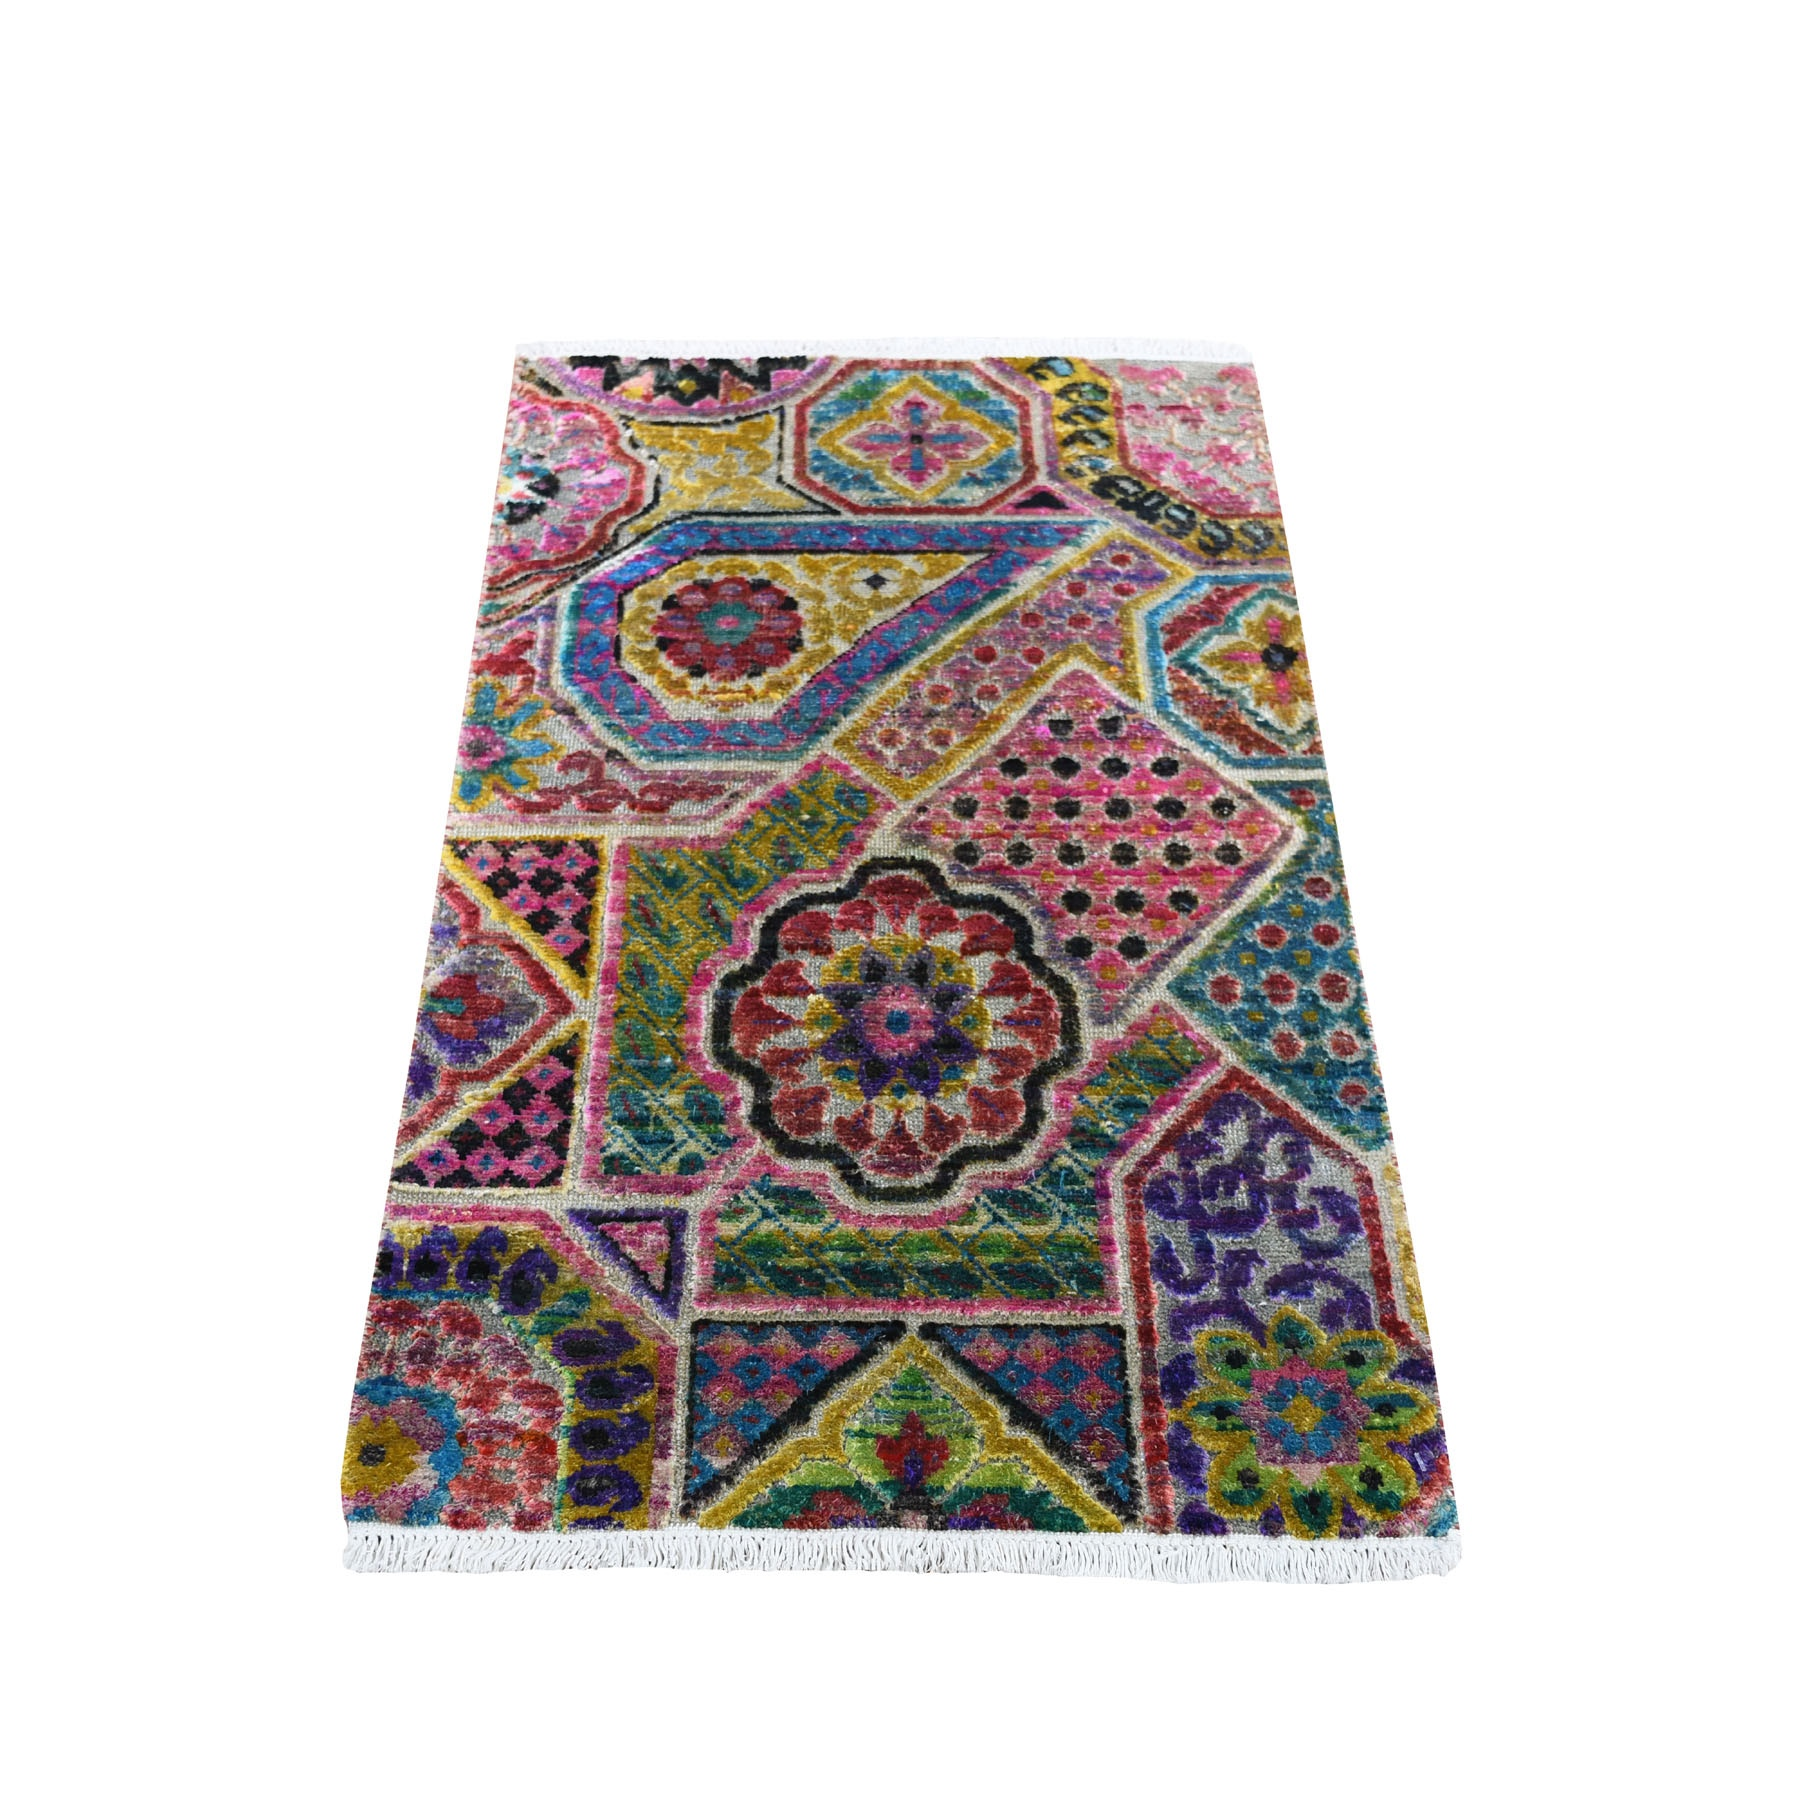 Real Silk Collection Hand Knotted Multicolored Rug No: 0193920